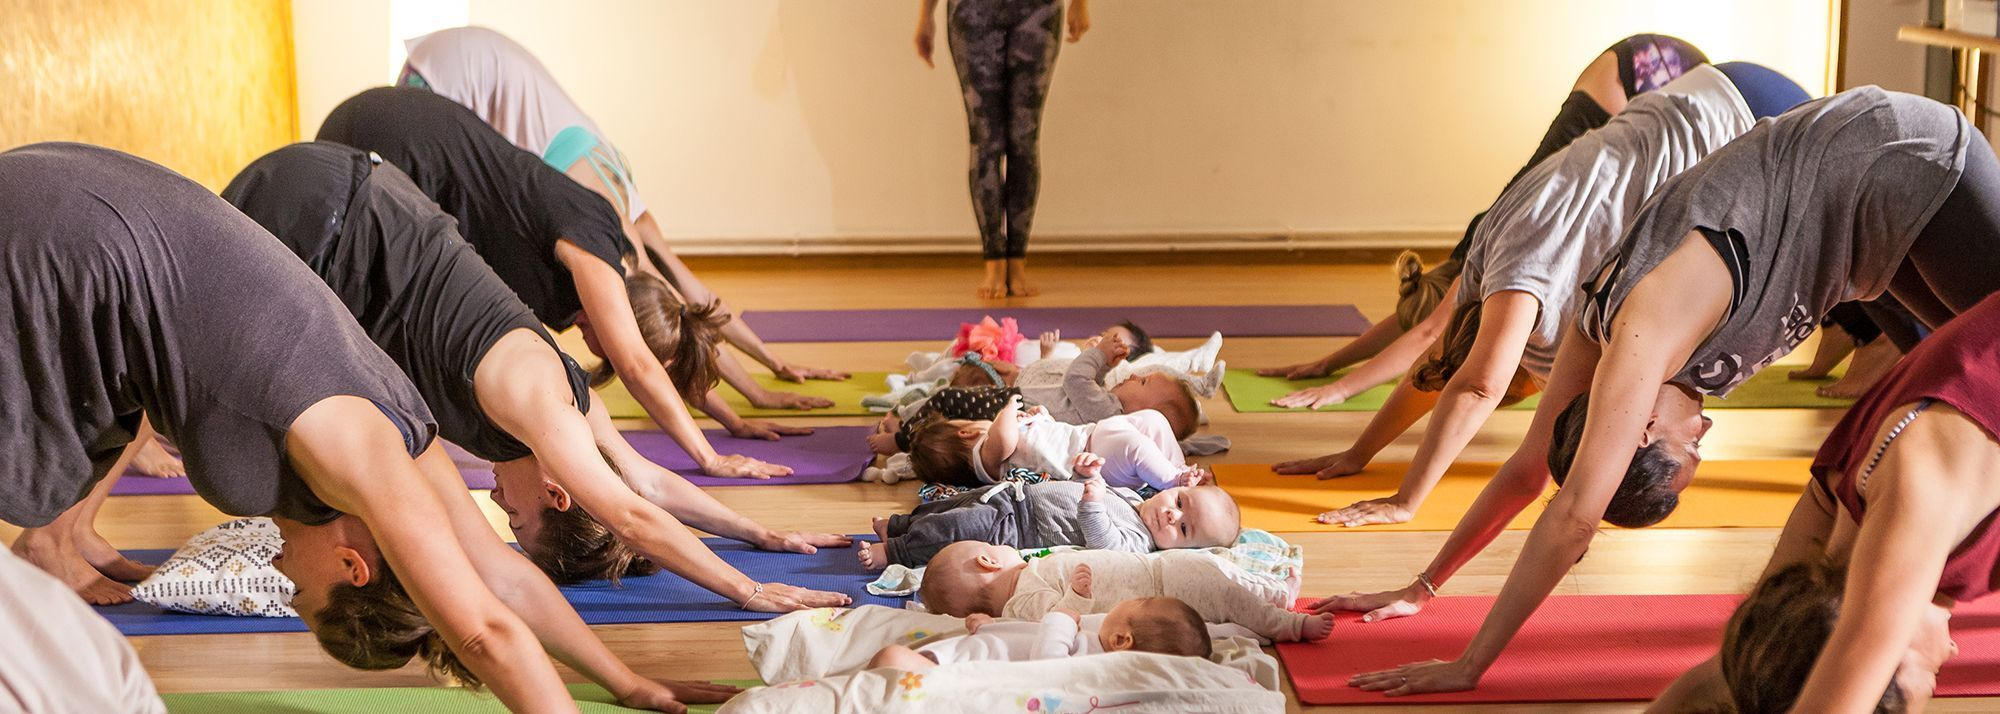 YOGA-CON-BEBES copia